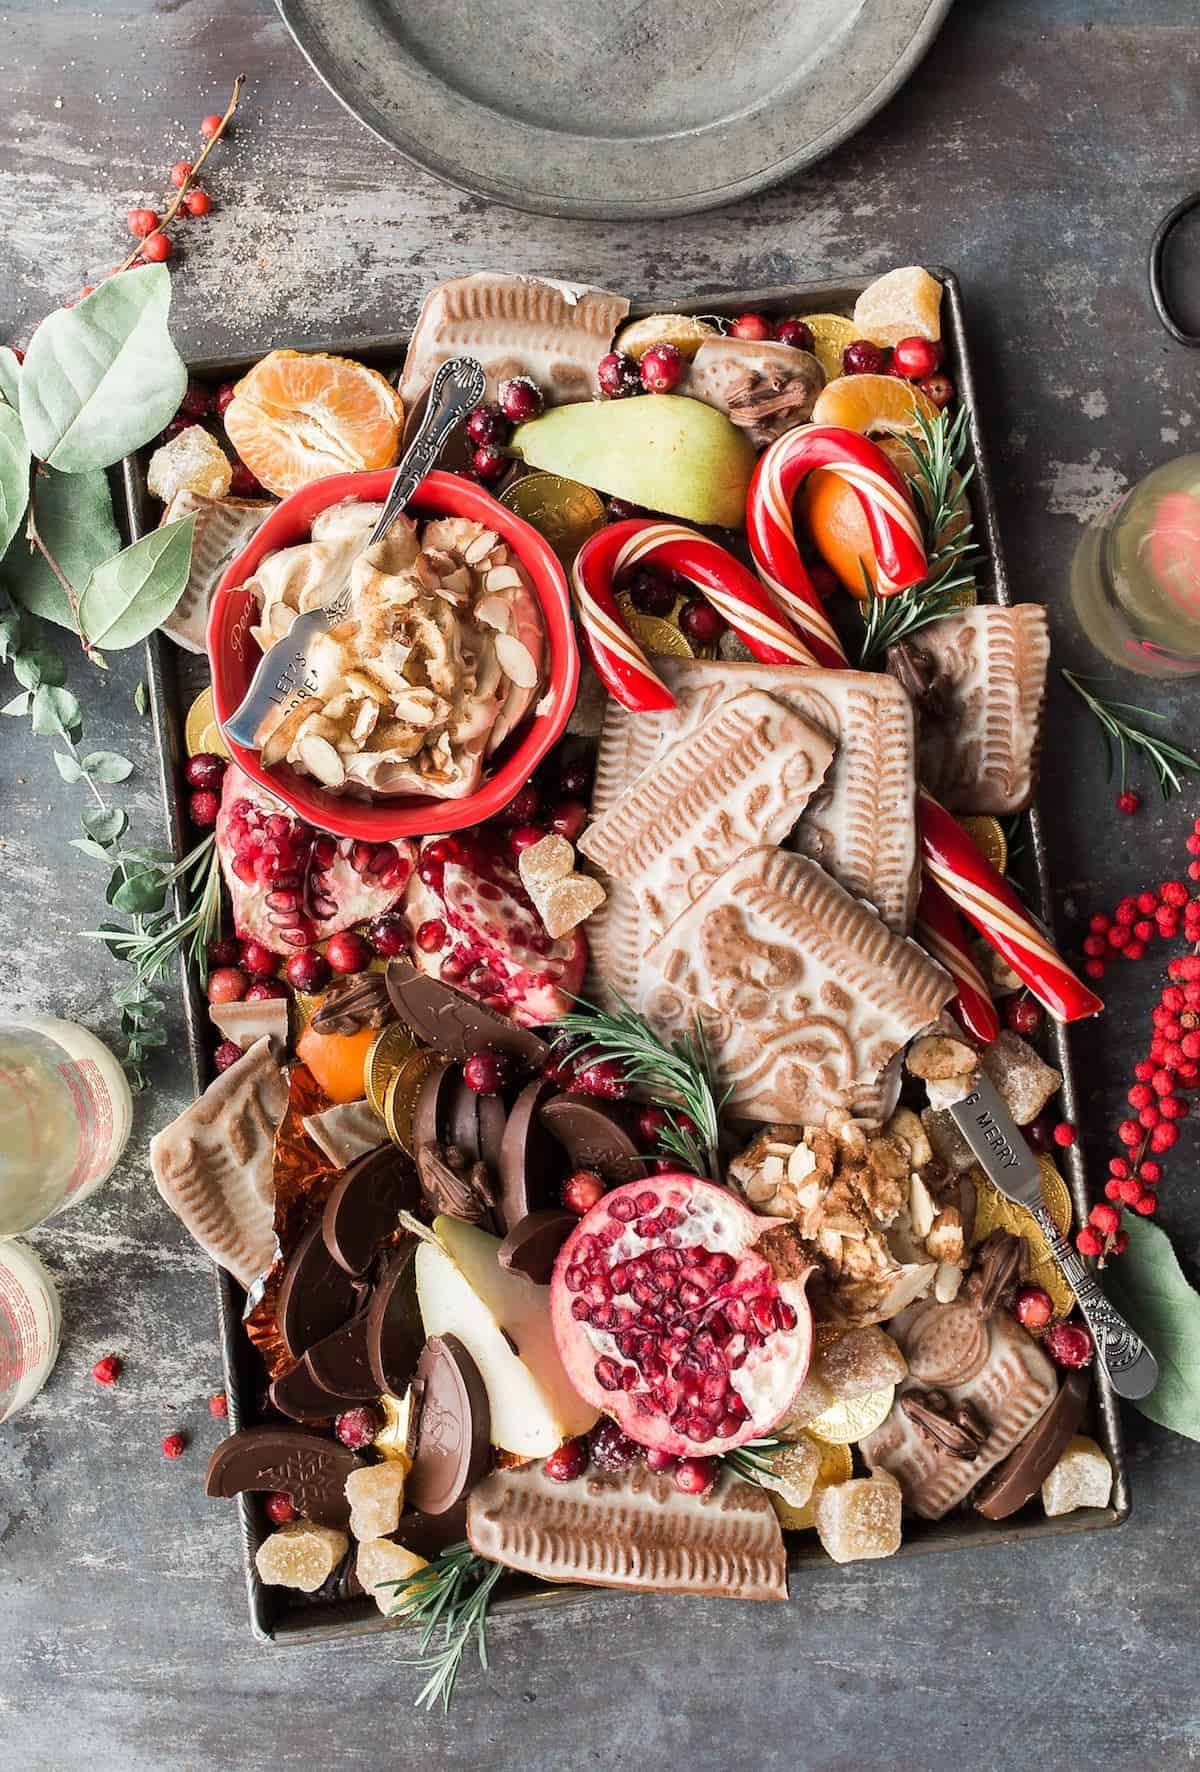 very full plate of traditional Christmas treats